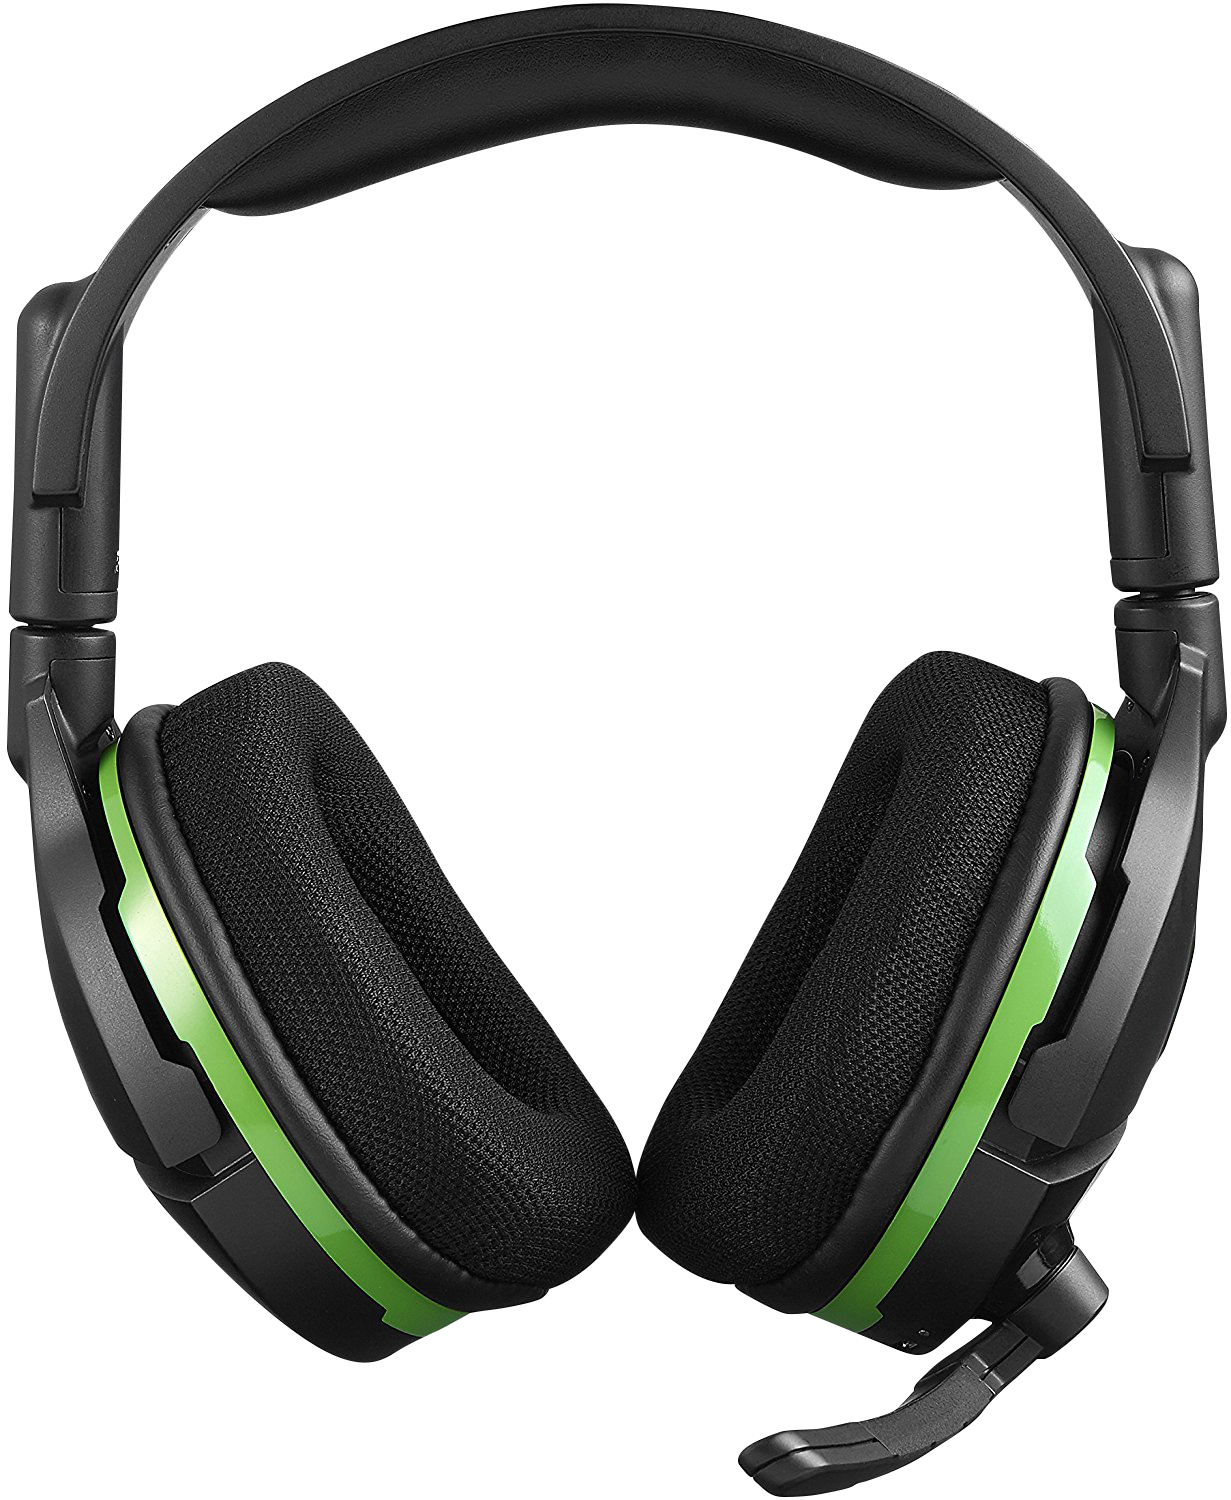 Buy Turtle Beach Stealth Gaming Headset for Xbox One - Microsoft Store 8d8f6ddb03466